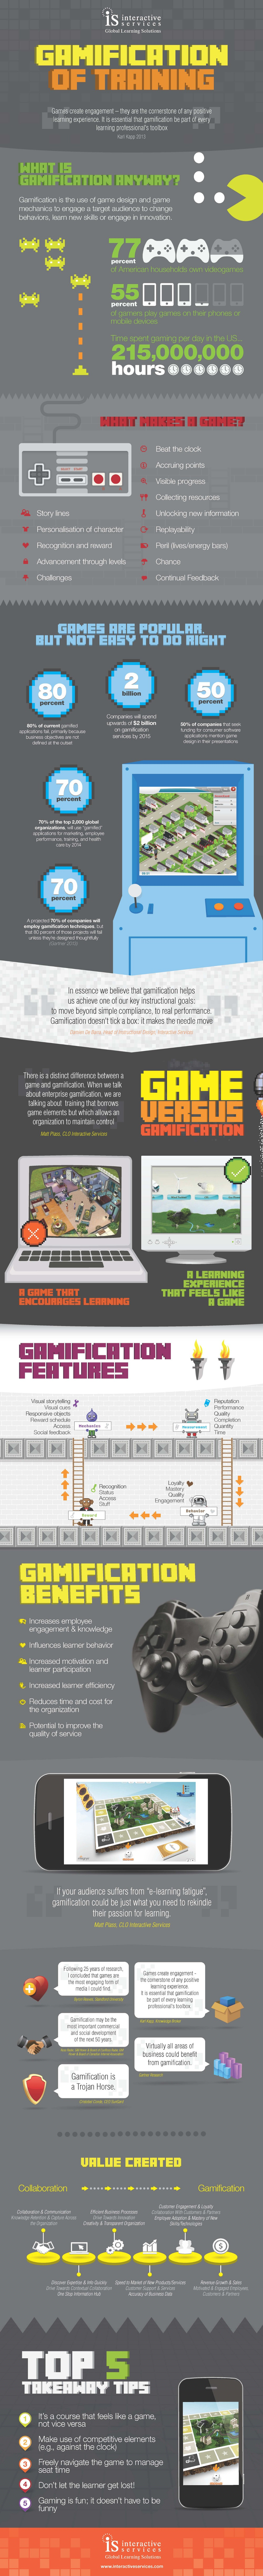 gamification-of-training-infographic